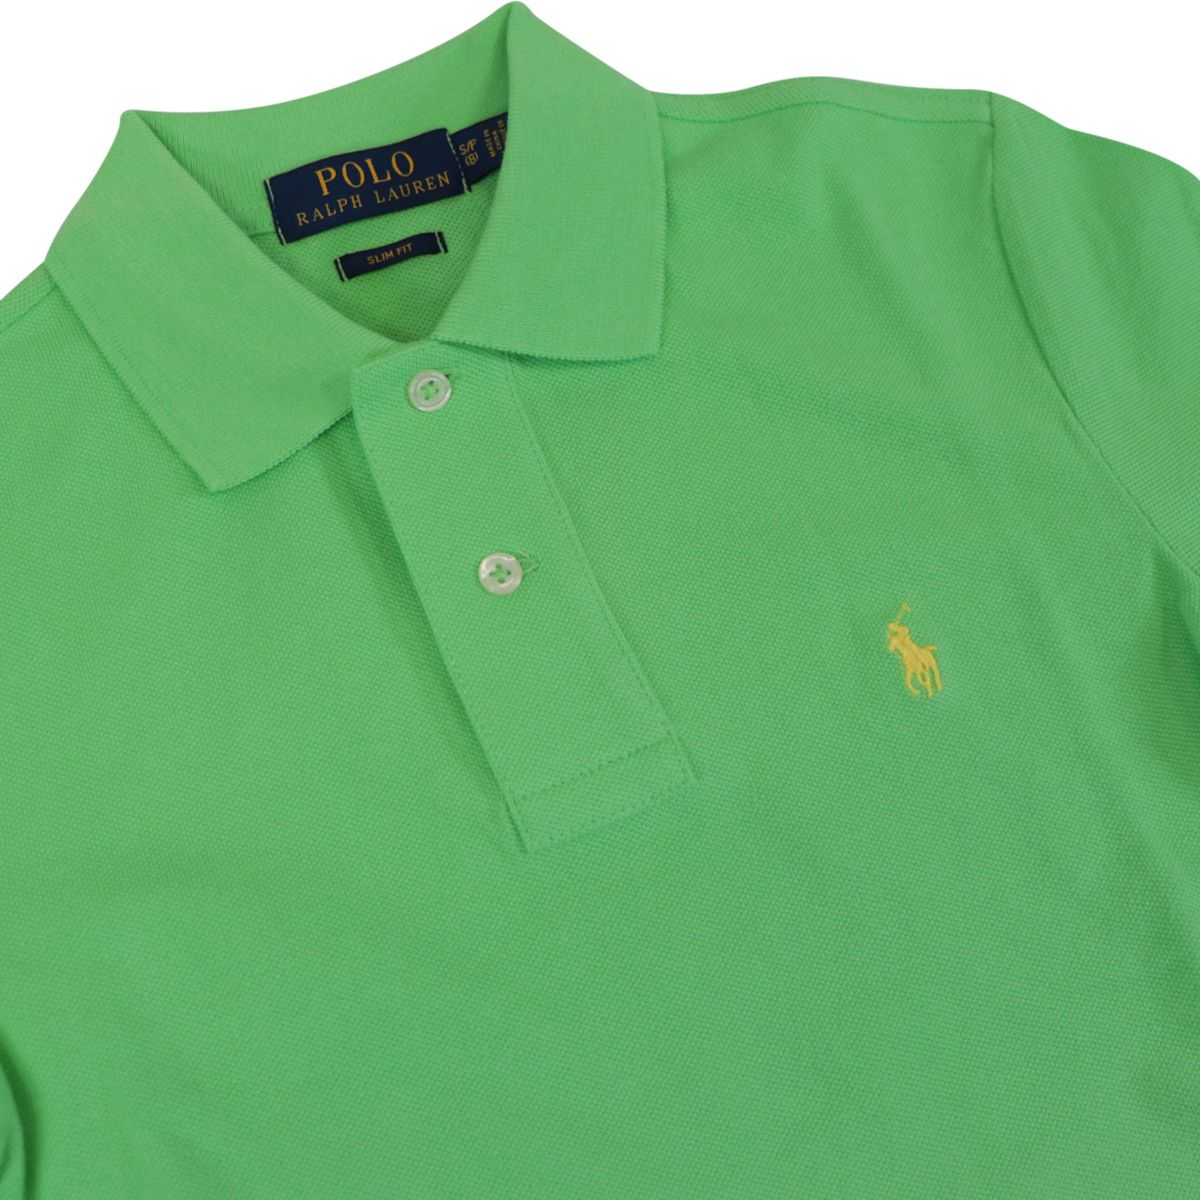 Custom fit polo shirt with contrasting logo embroidery New lime Polo Ralph Lauren